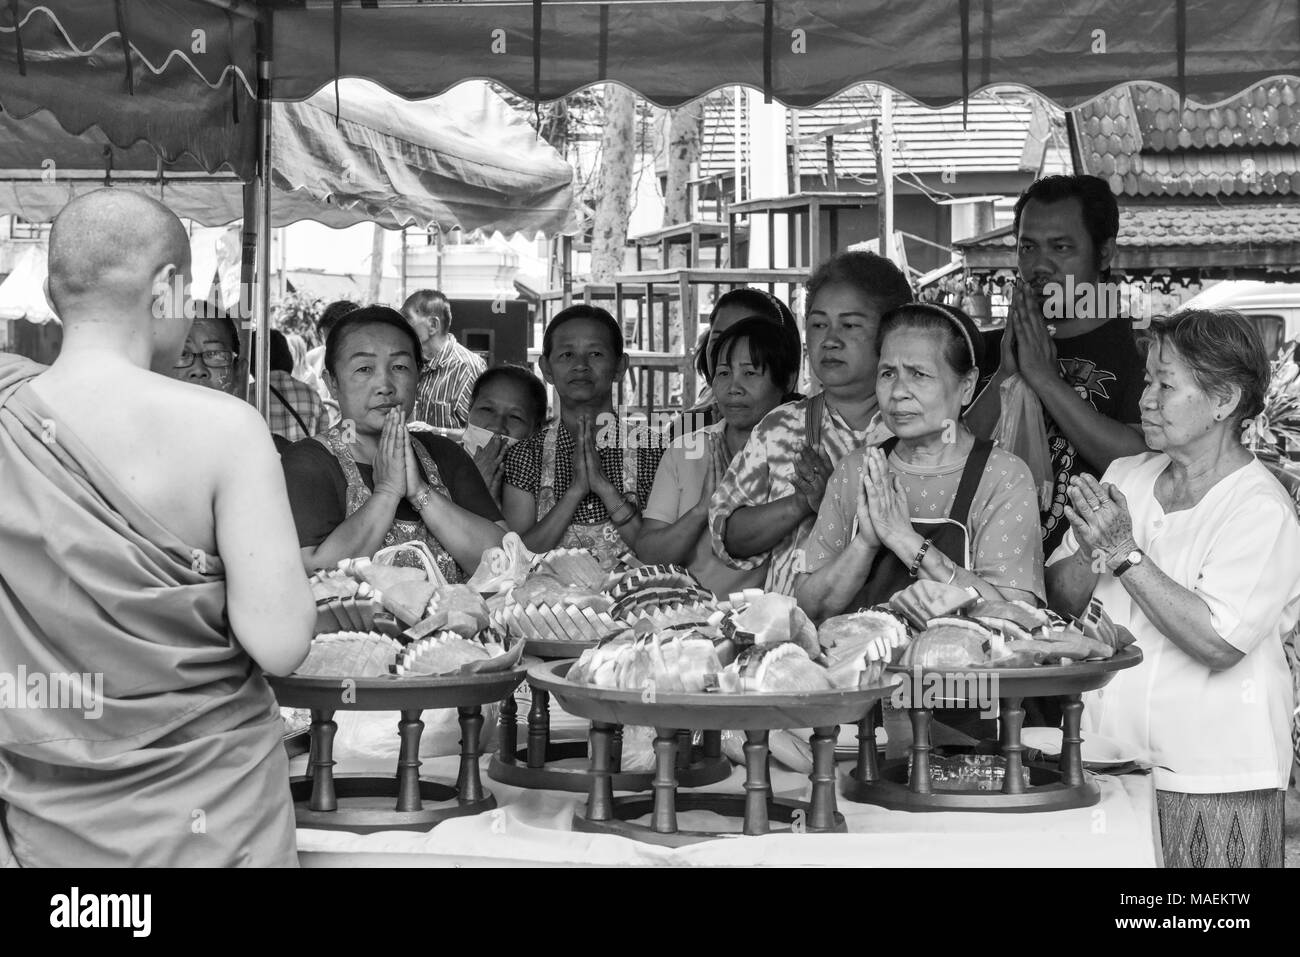 First Day of Thai New Year, Chaing Mai - Stock Image